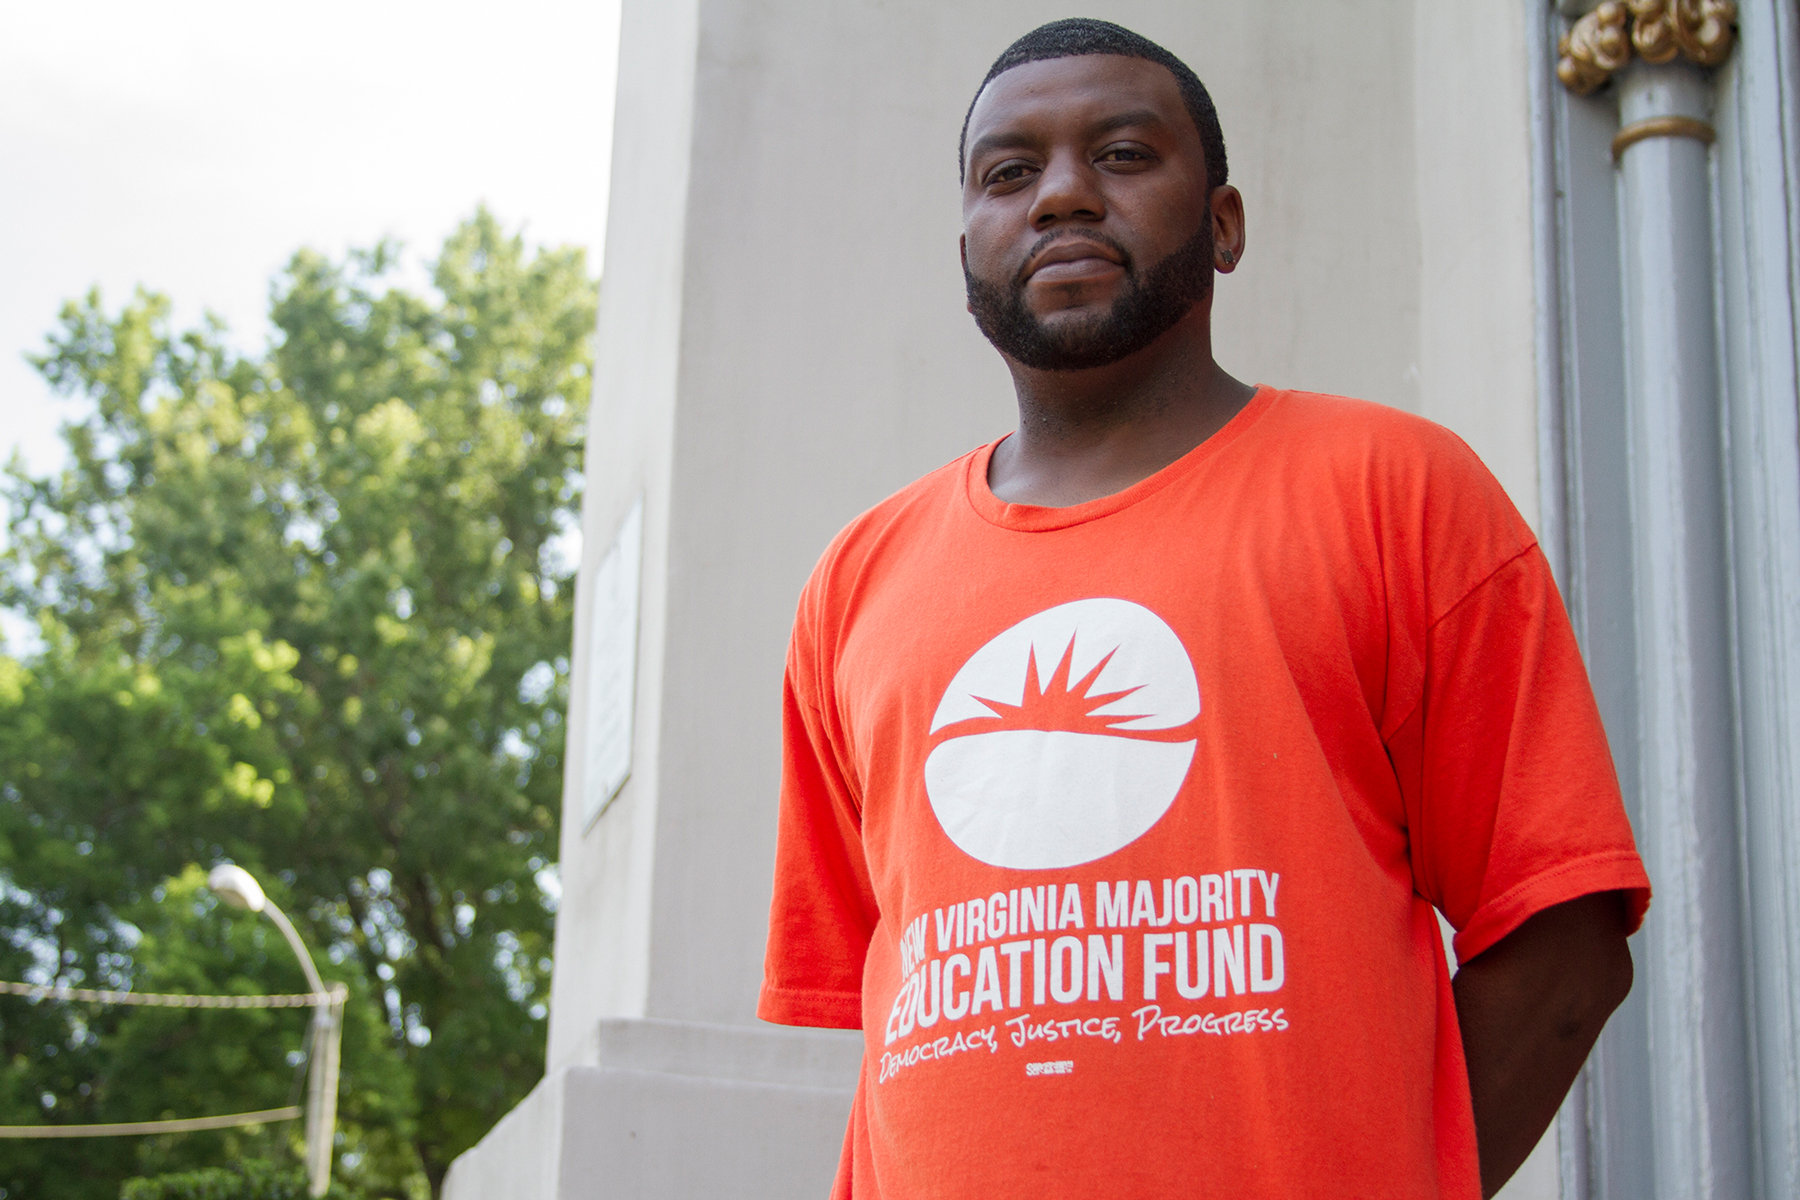 As a staff member with the New Virginia Majority Education Fund, Brandon Polly reaches out to felons living in and around Norfolk, helping them understand their rights and navigate the re-enfranchisement process. (Marianna Hauglie/News21)